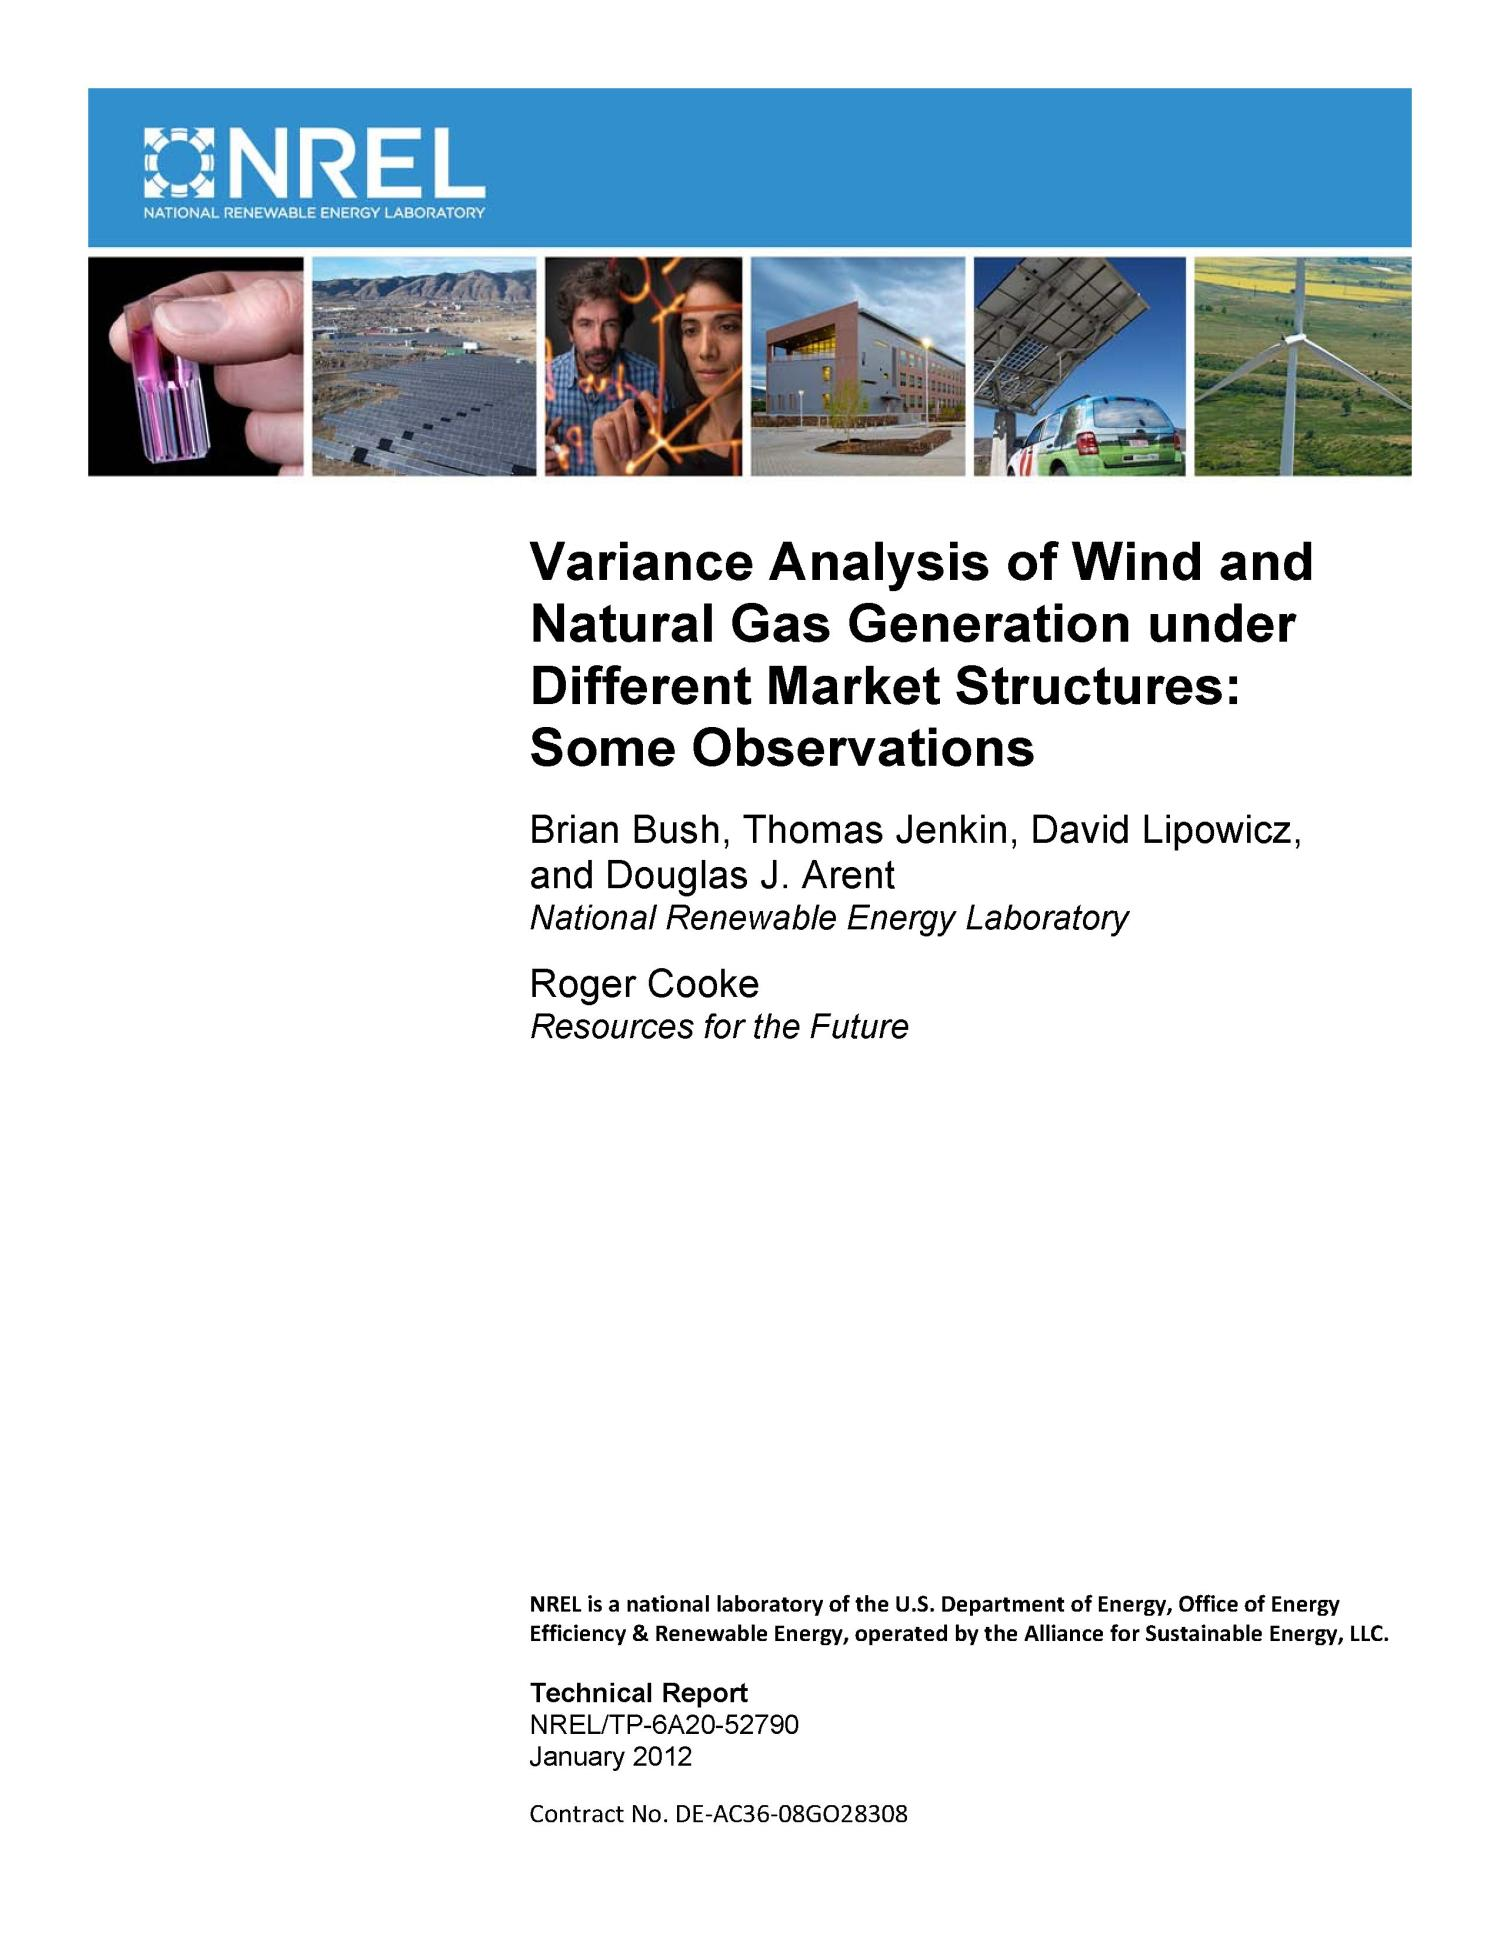 Variance Analysis of Wind and Natural Gas Generation under